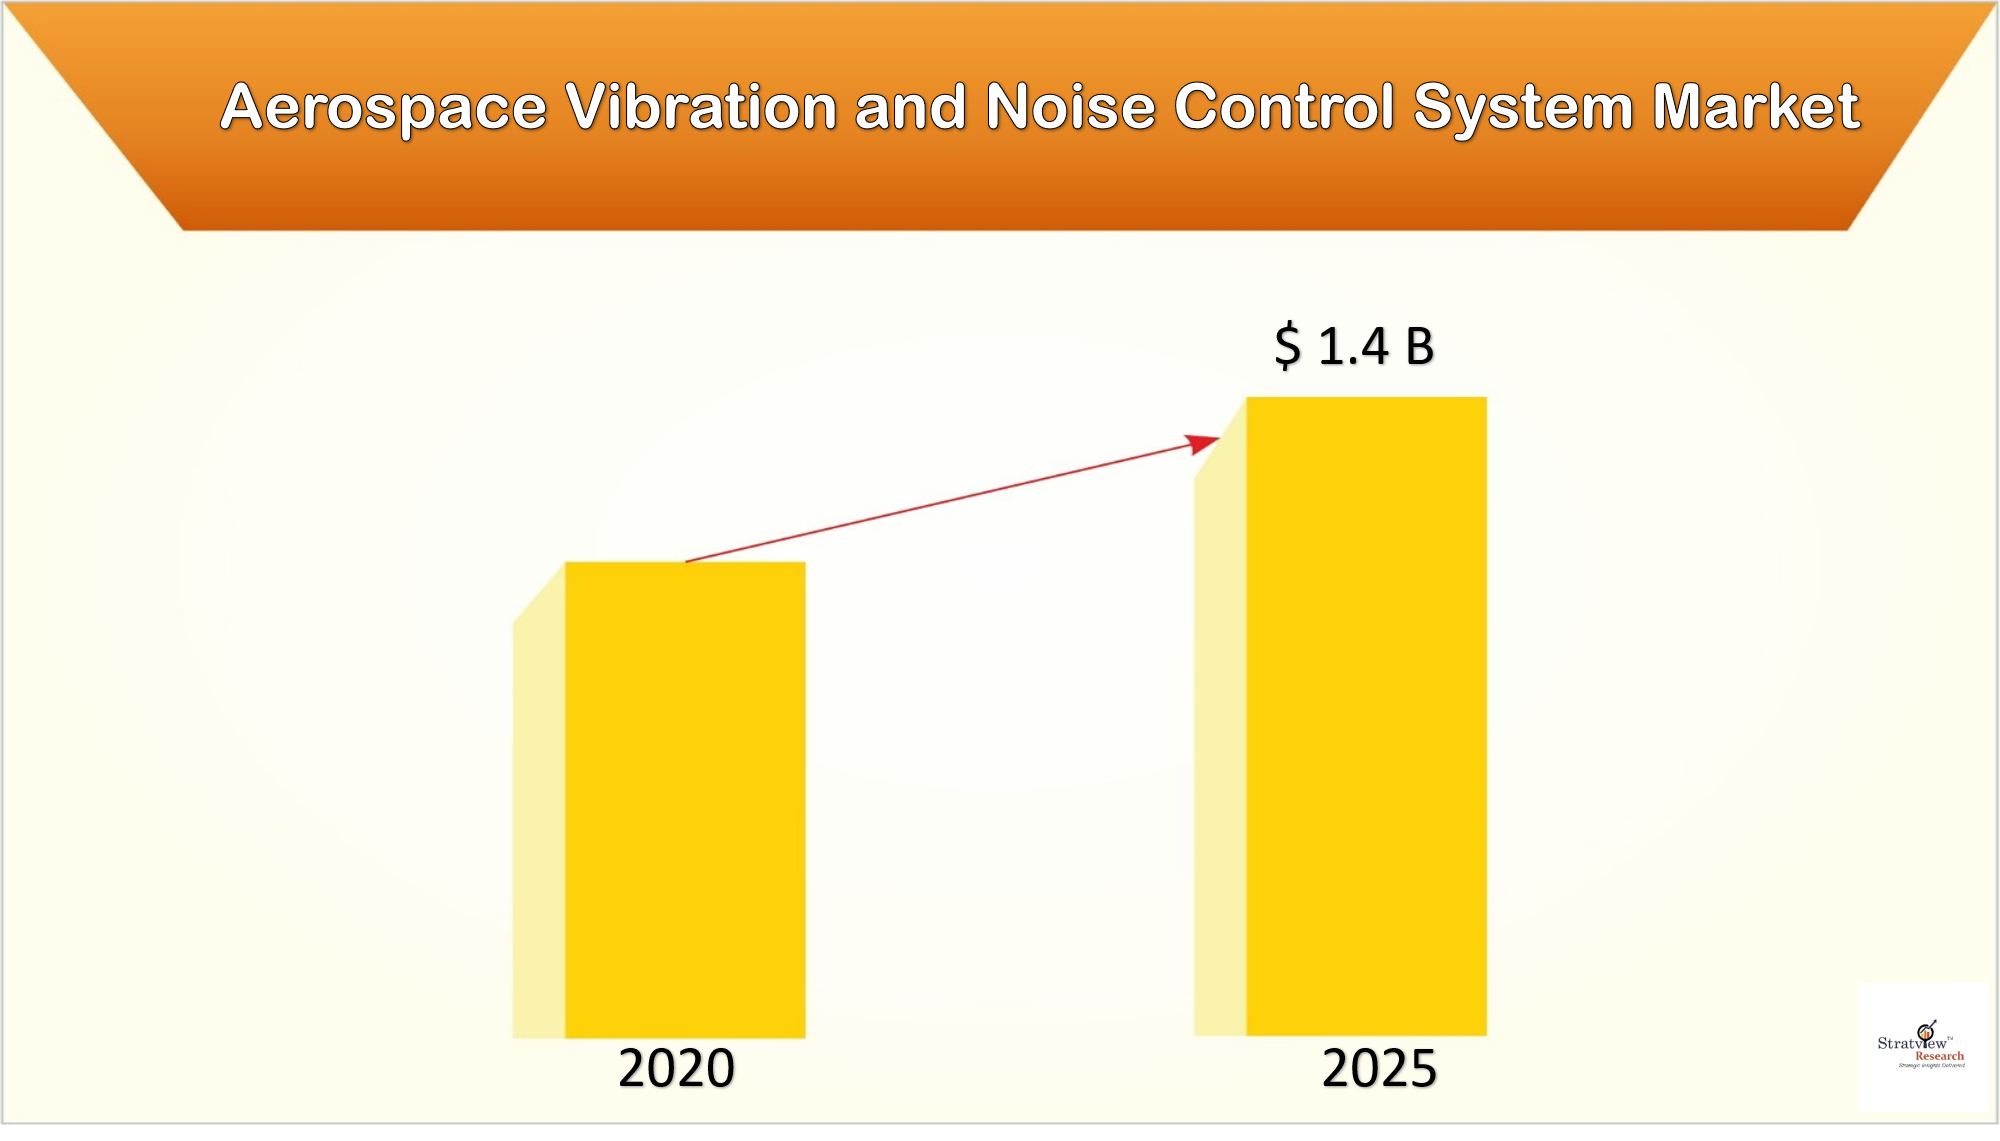 The changing dynamics in Aerospace Vibration and Noise Control System Market with covid-19 impact assessment.